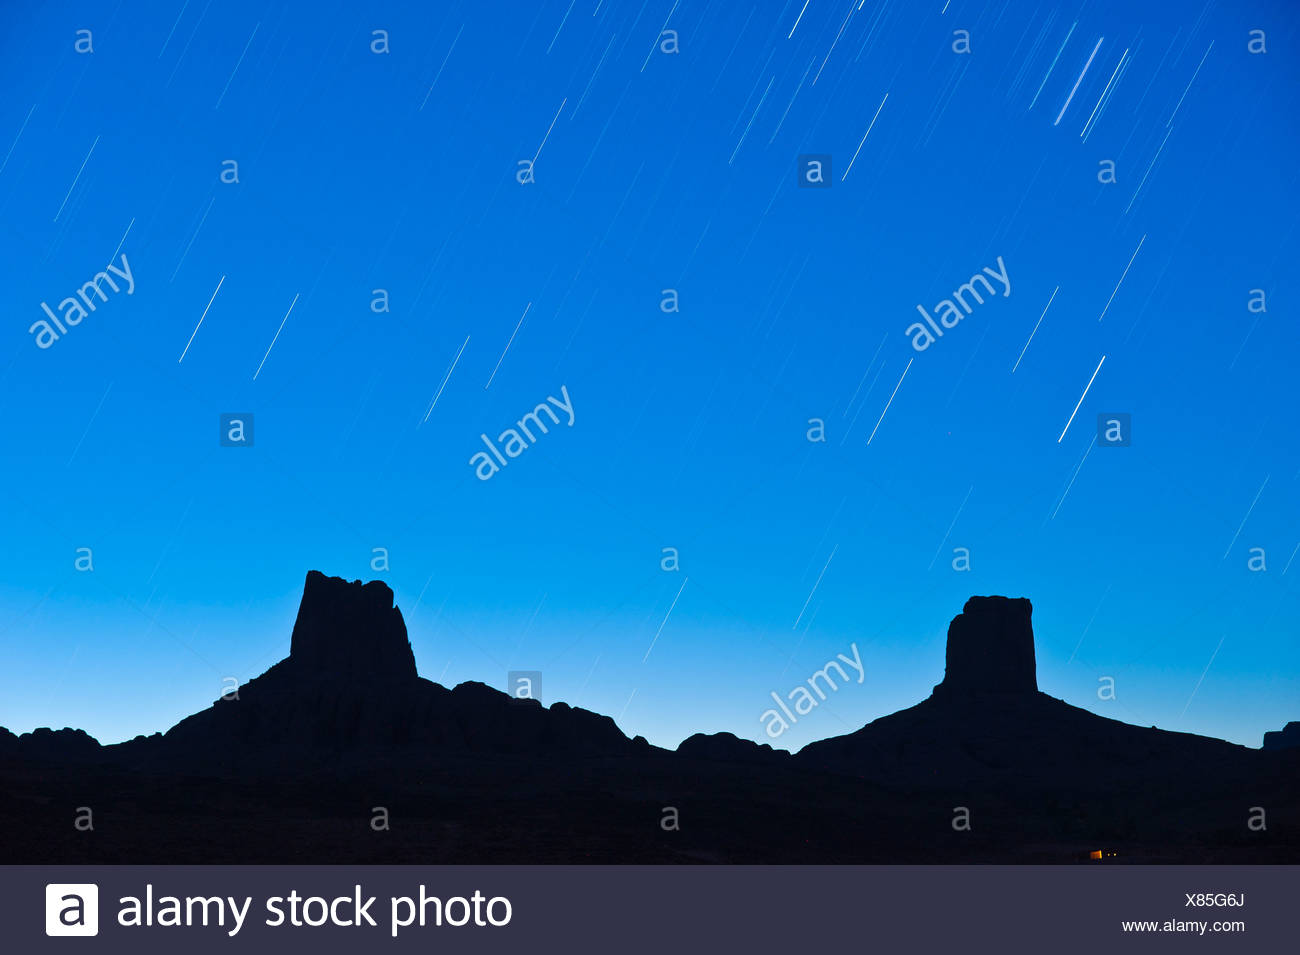 Star-spattered sky over imposing rocks, called Madame and Monsieur, Bab'n Ali, Djebel Sarhro mountains, southern Morocco - Stock Image